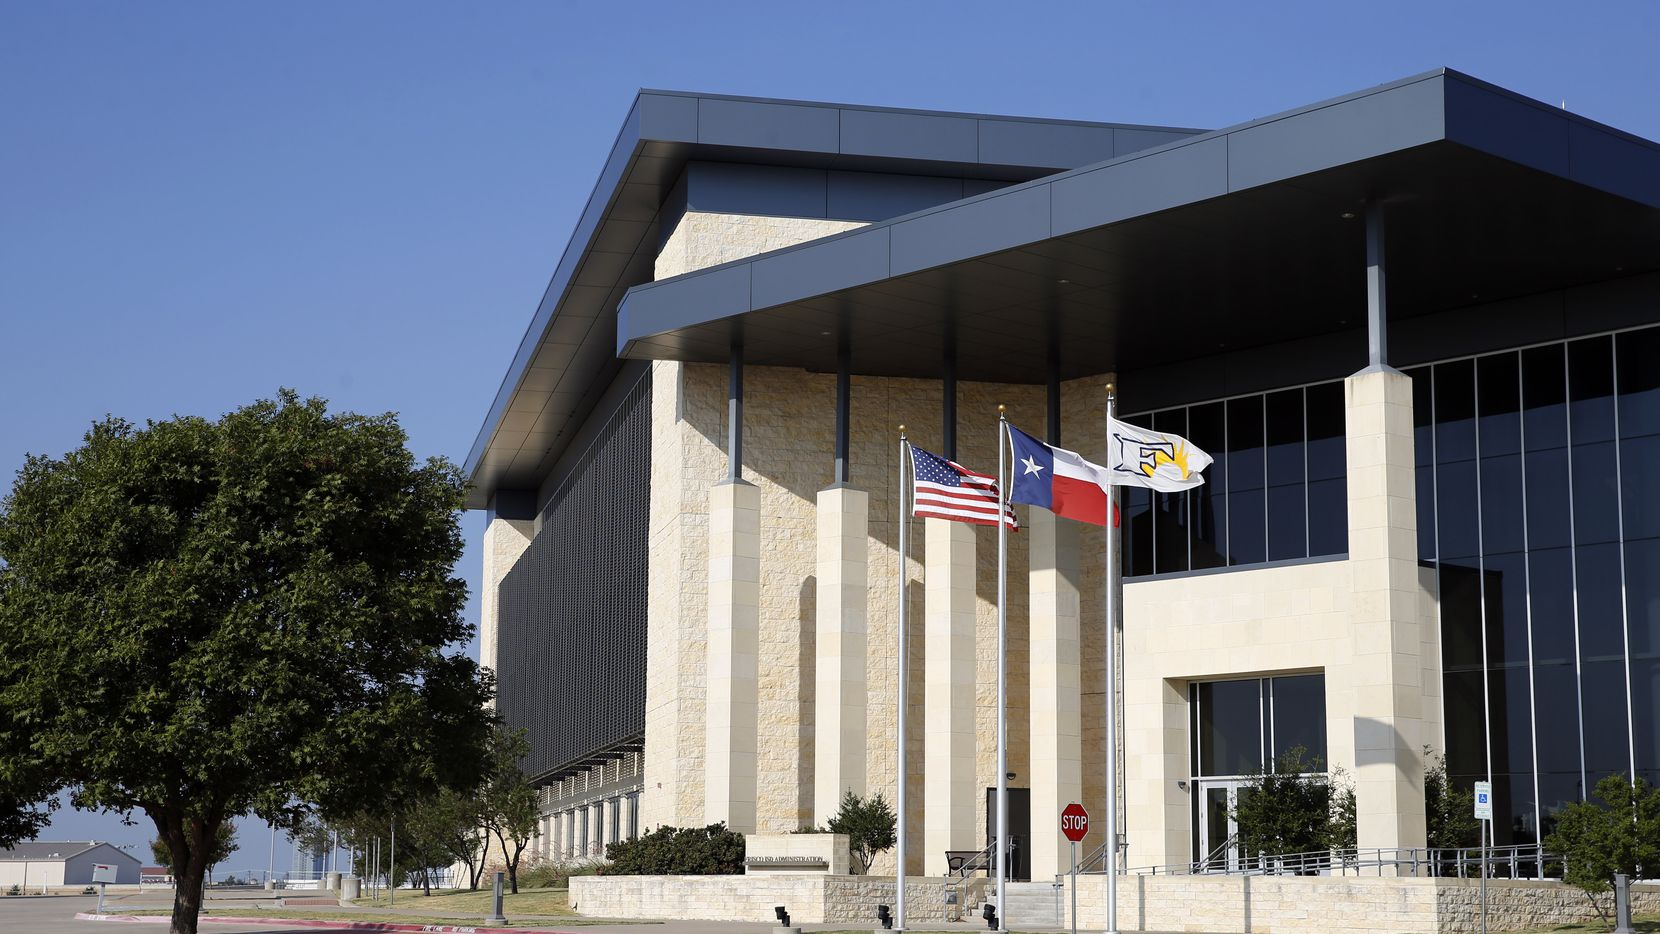 The Frisco ISD administration building, shown in a 2019 file photo. Three Frisco students claimed spots in the Dallas Cowboys Wings and Dreams Scholarship Art Contest.